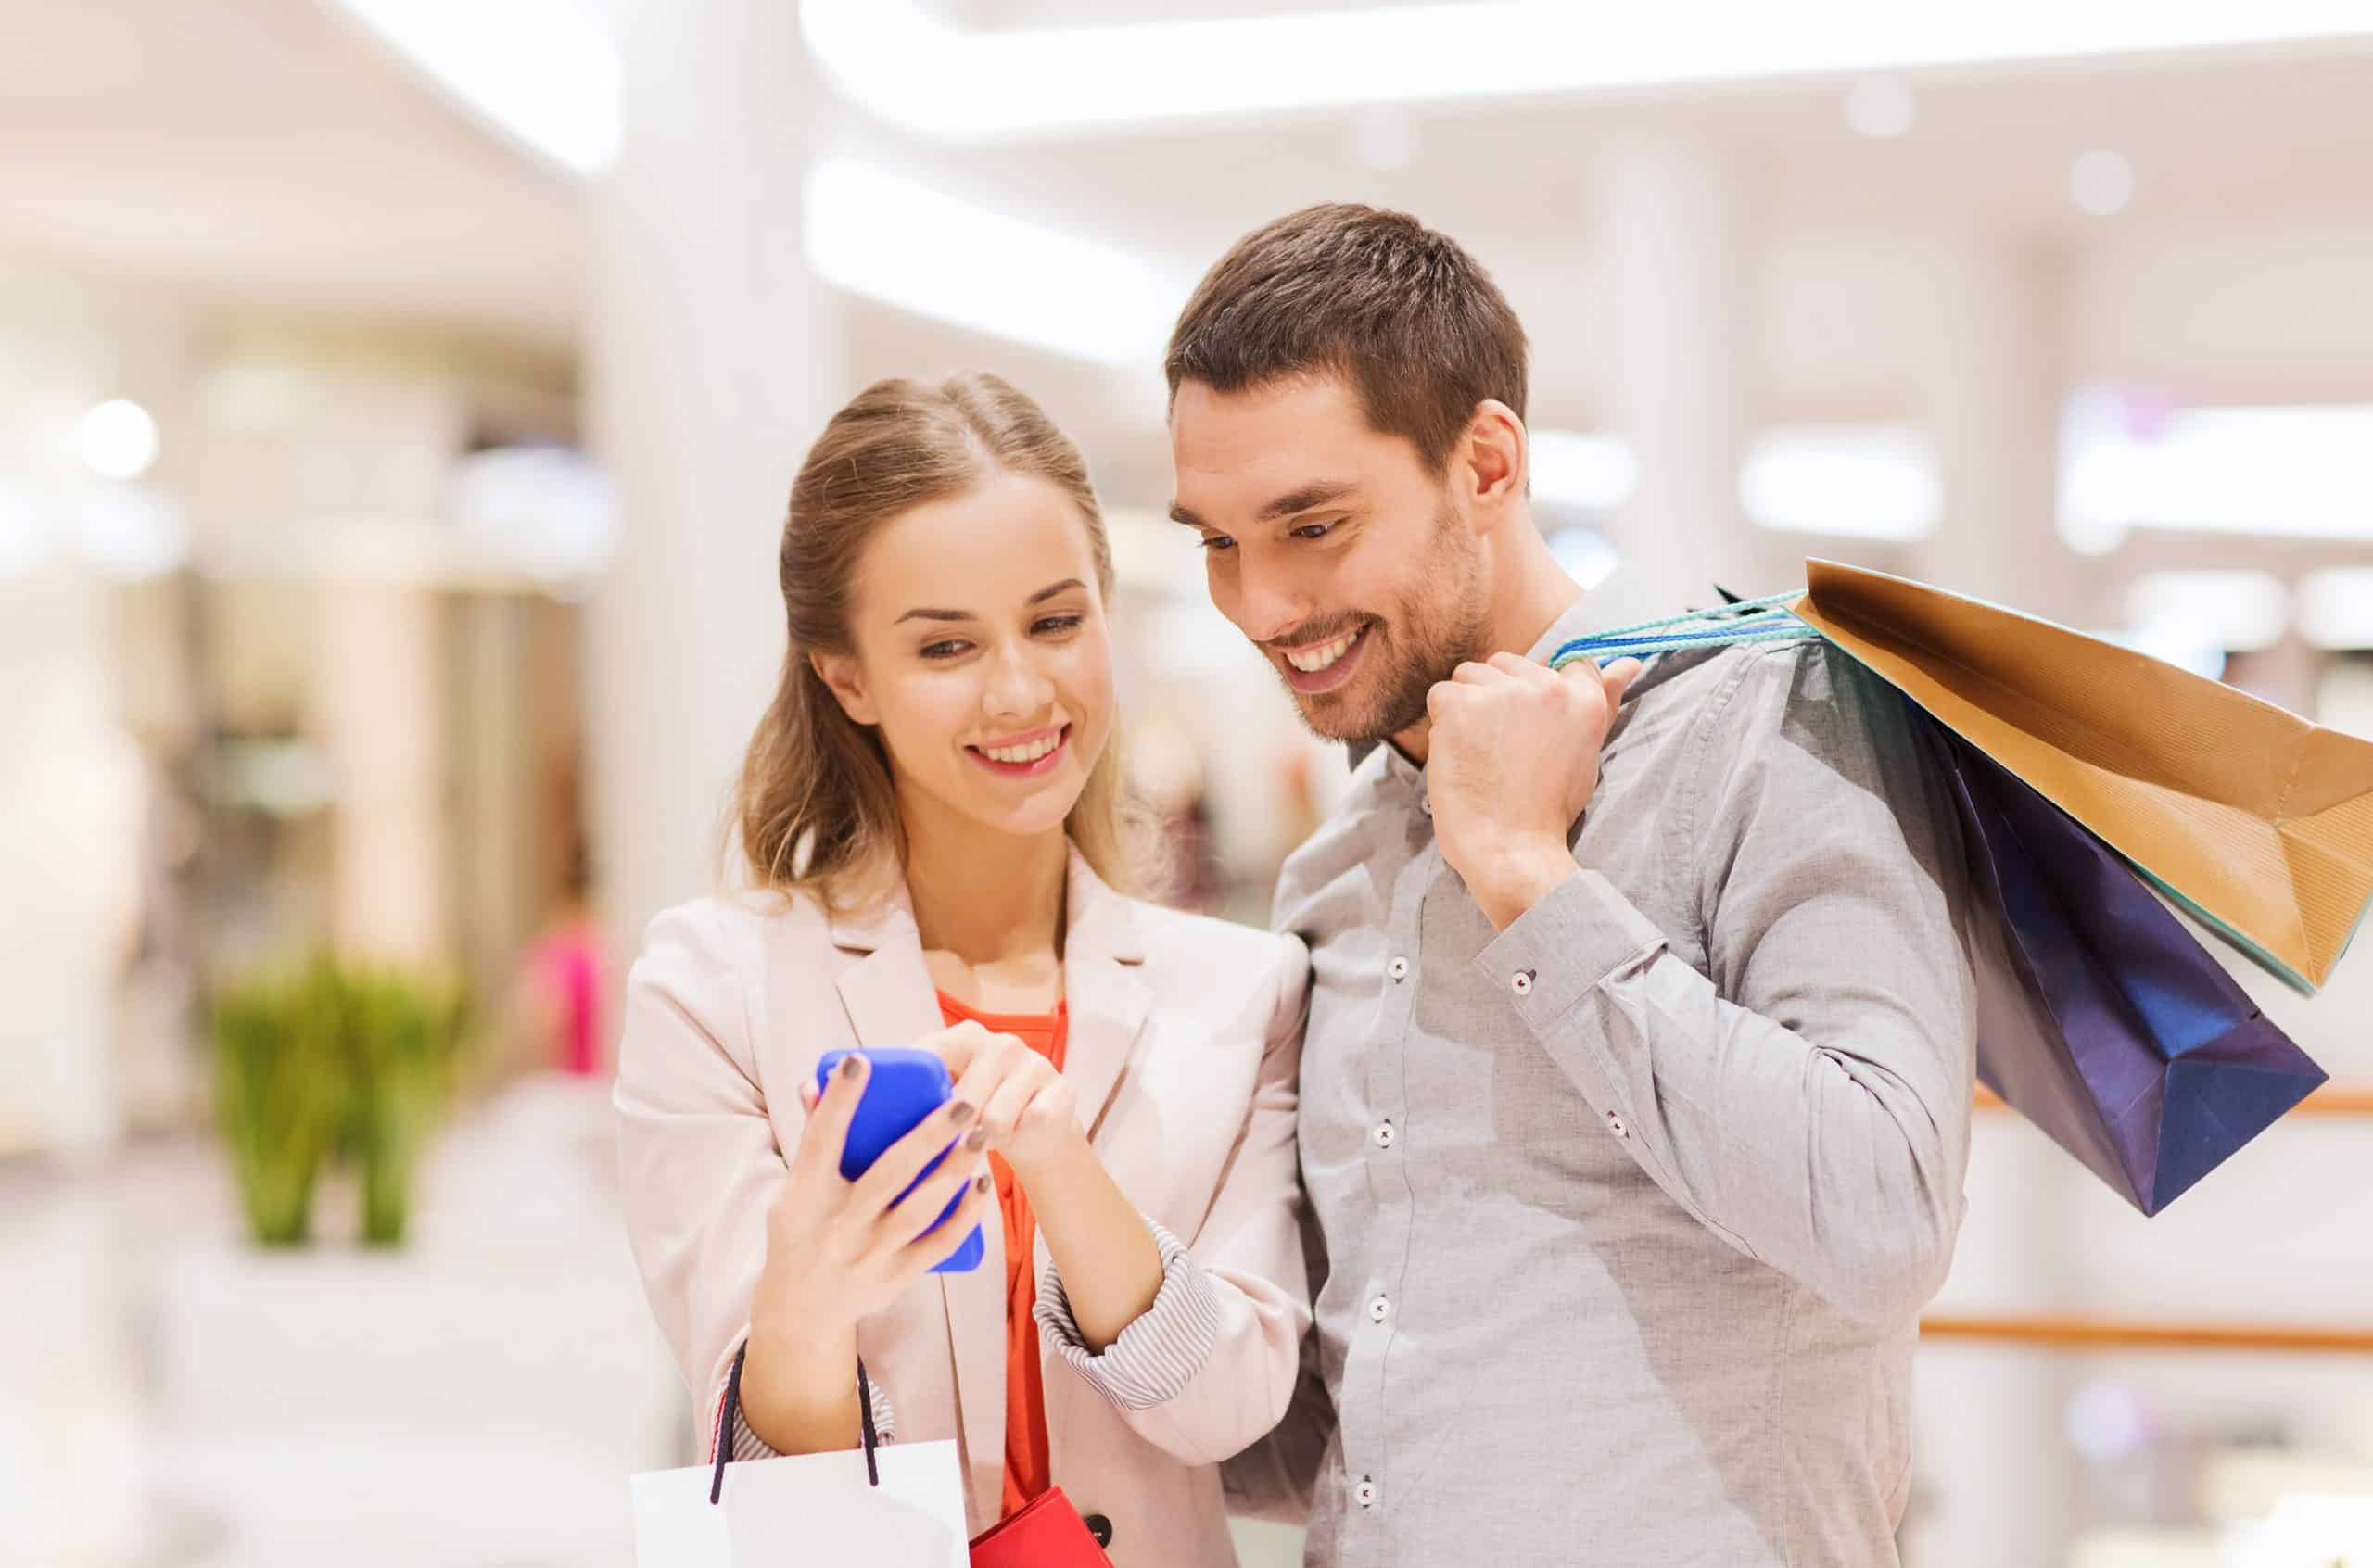 Best money-saving shopping apps - Man and woman find deals on phone apps when shopping at the mall